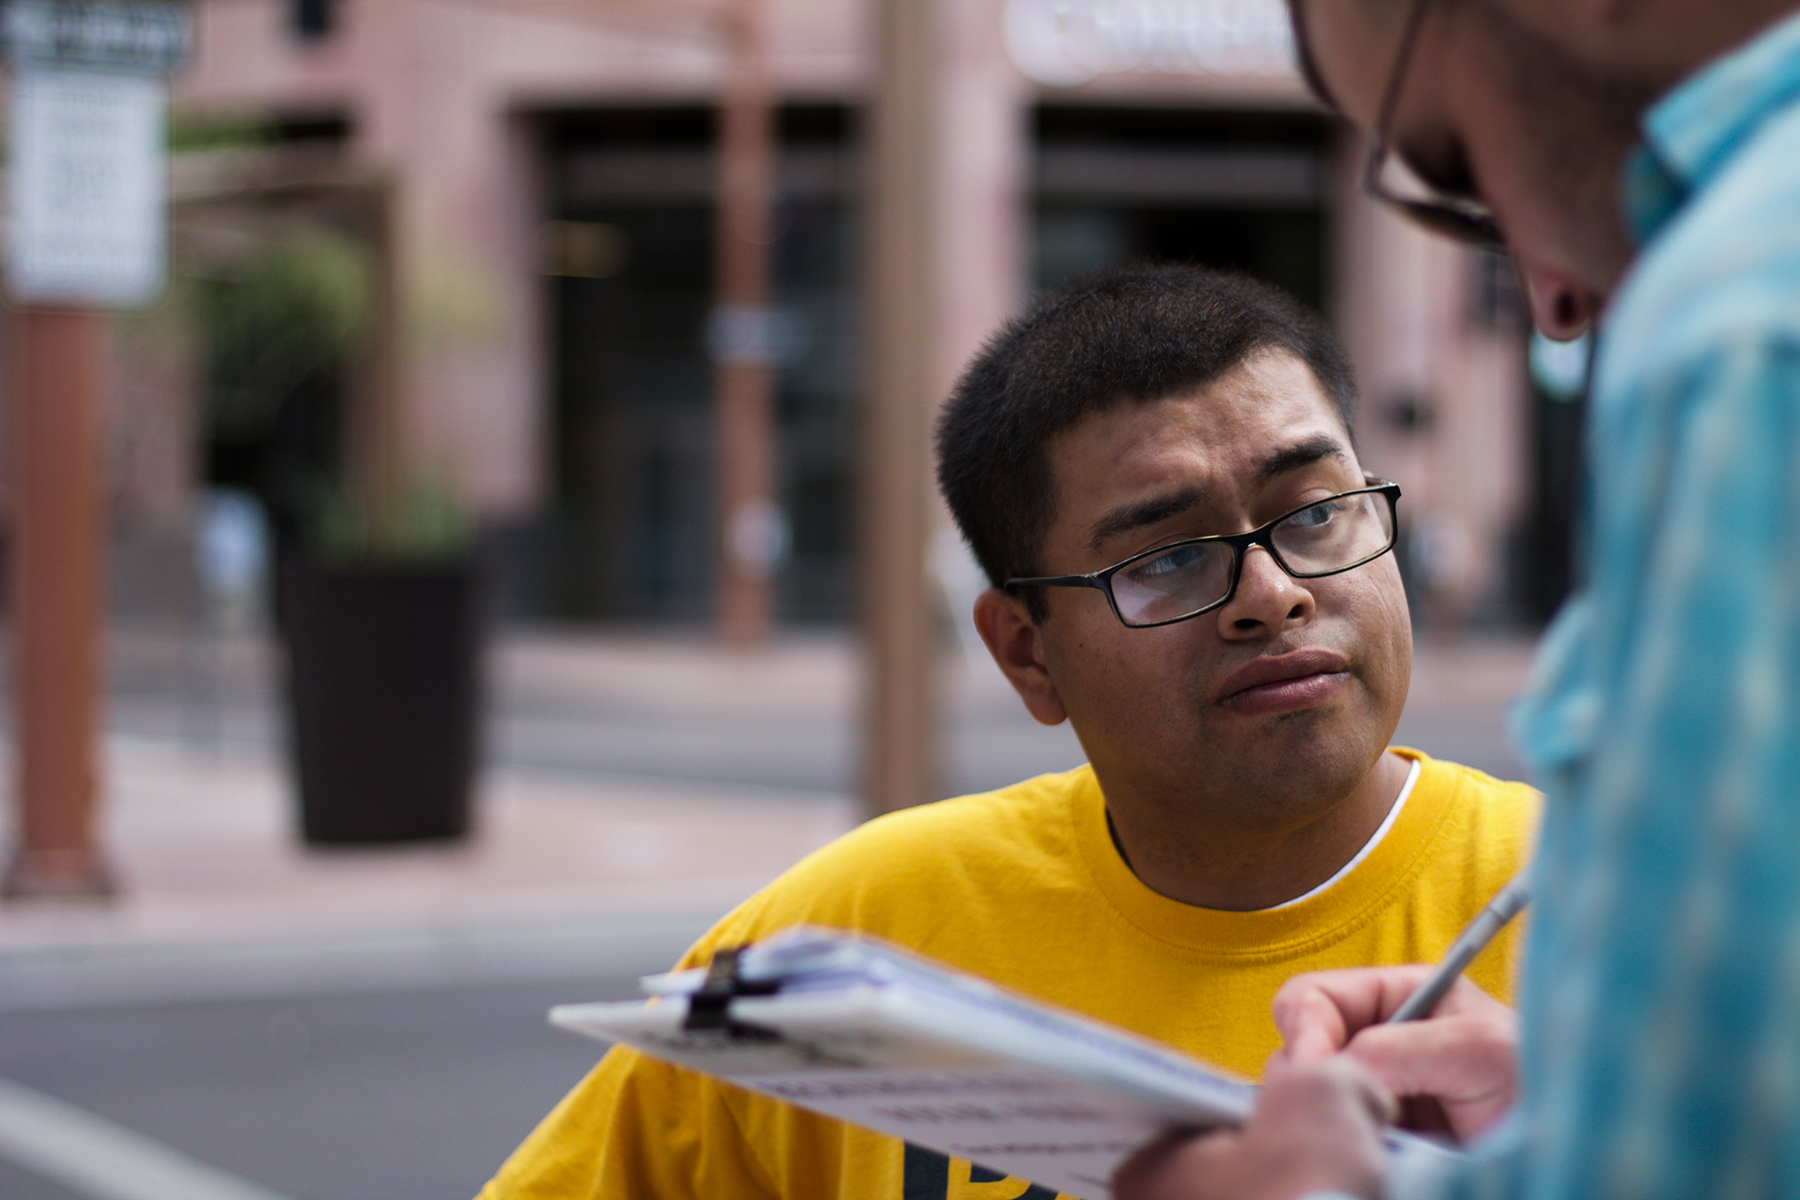 Jose Barboza, a Promise Arizona volunteer, registers voters in Phoenix. Thirteen cases of double voting were prosecuted in the state since 2012. (Courtney Columbus/News21)